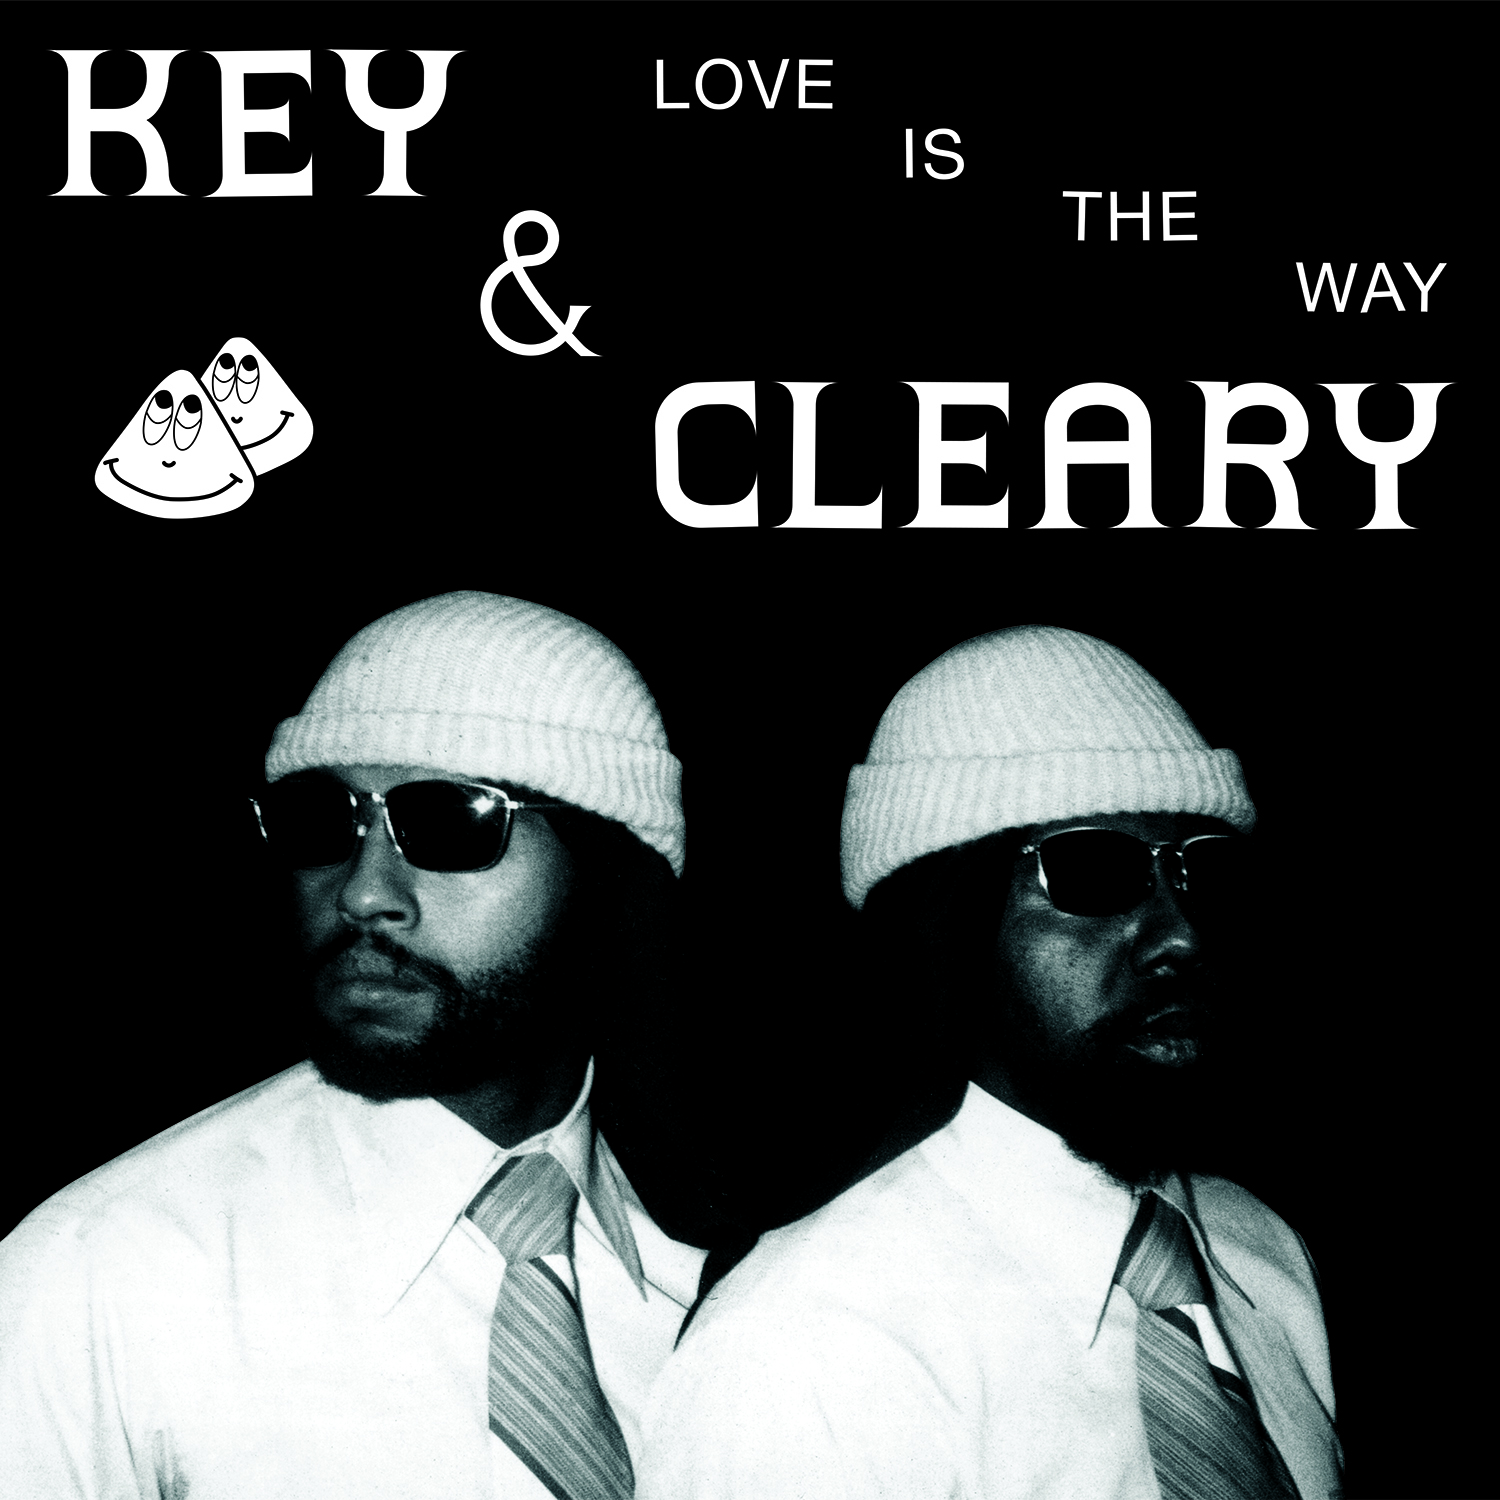 Key & Cleary – Love Is The Way